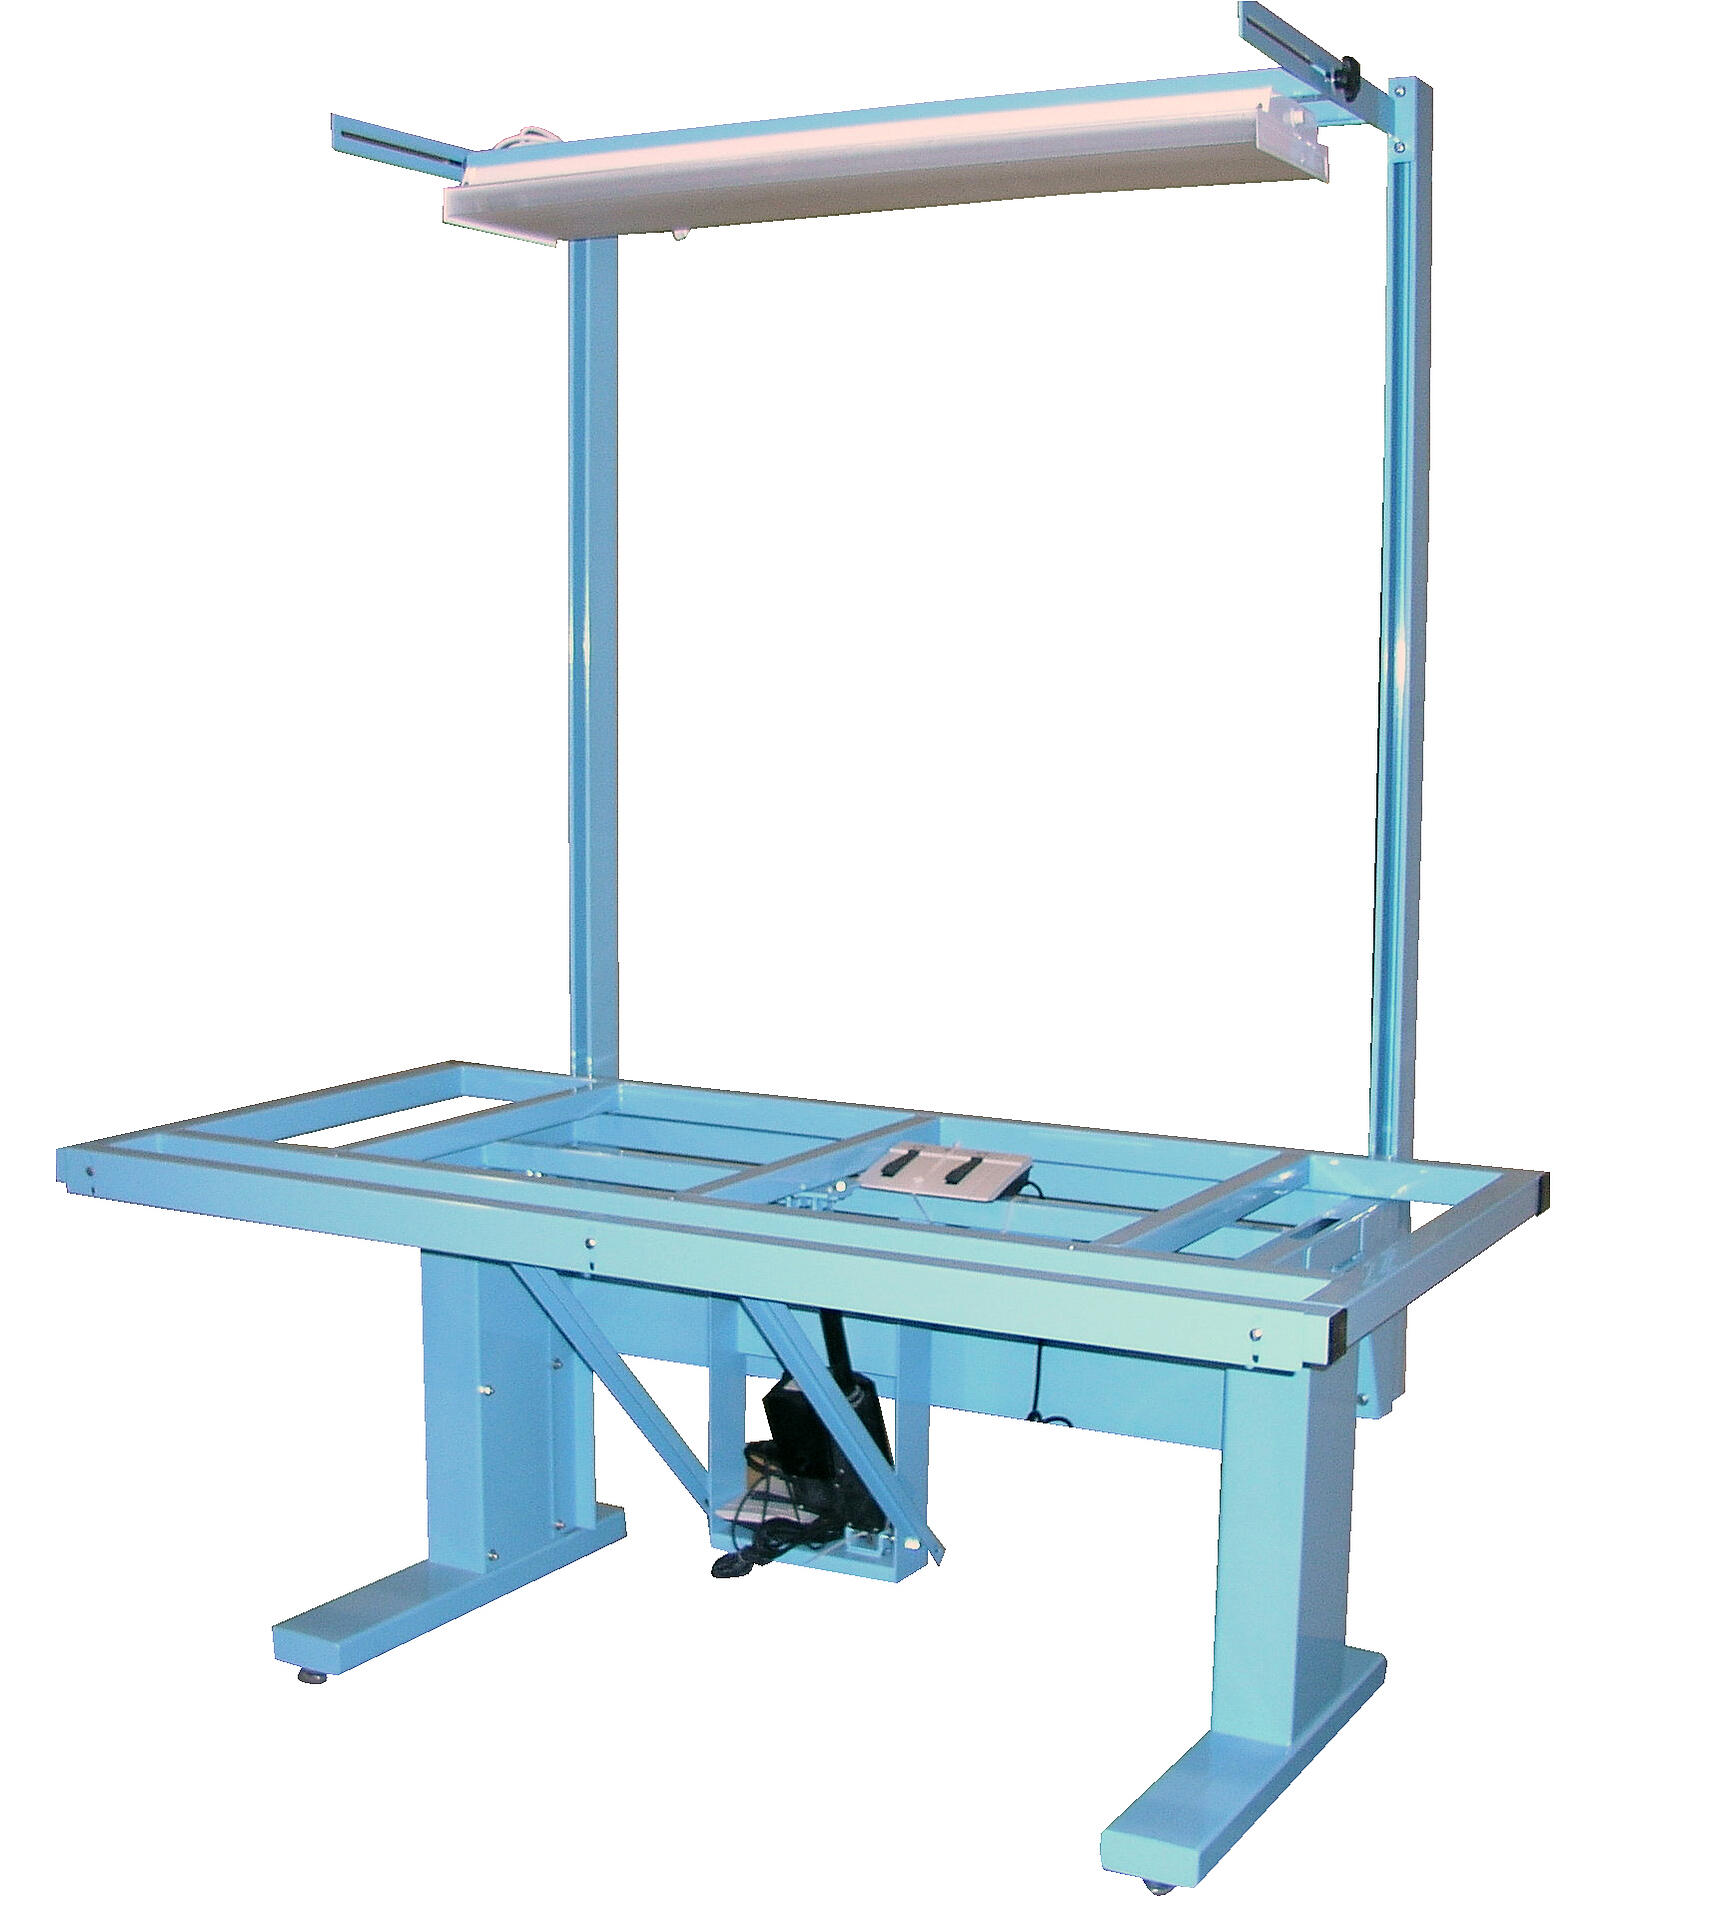 workbenches idea file past orders wire harness bench modular accessories